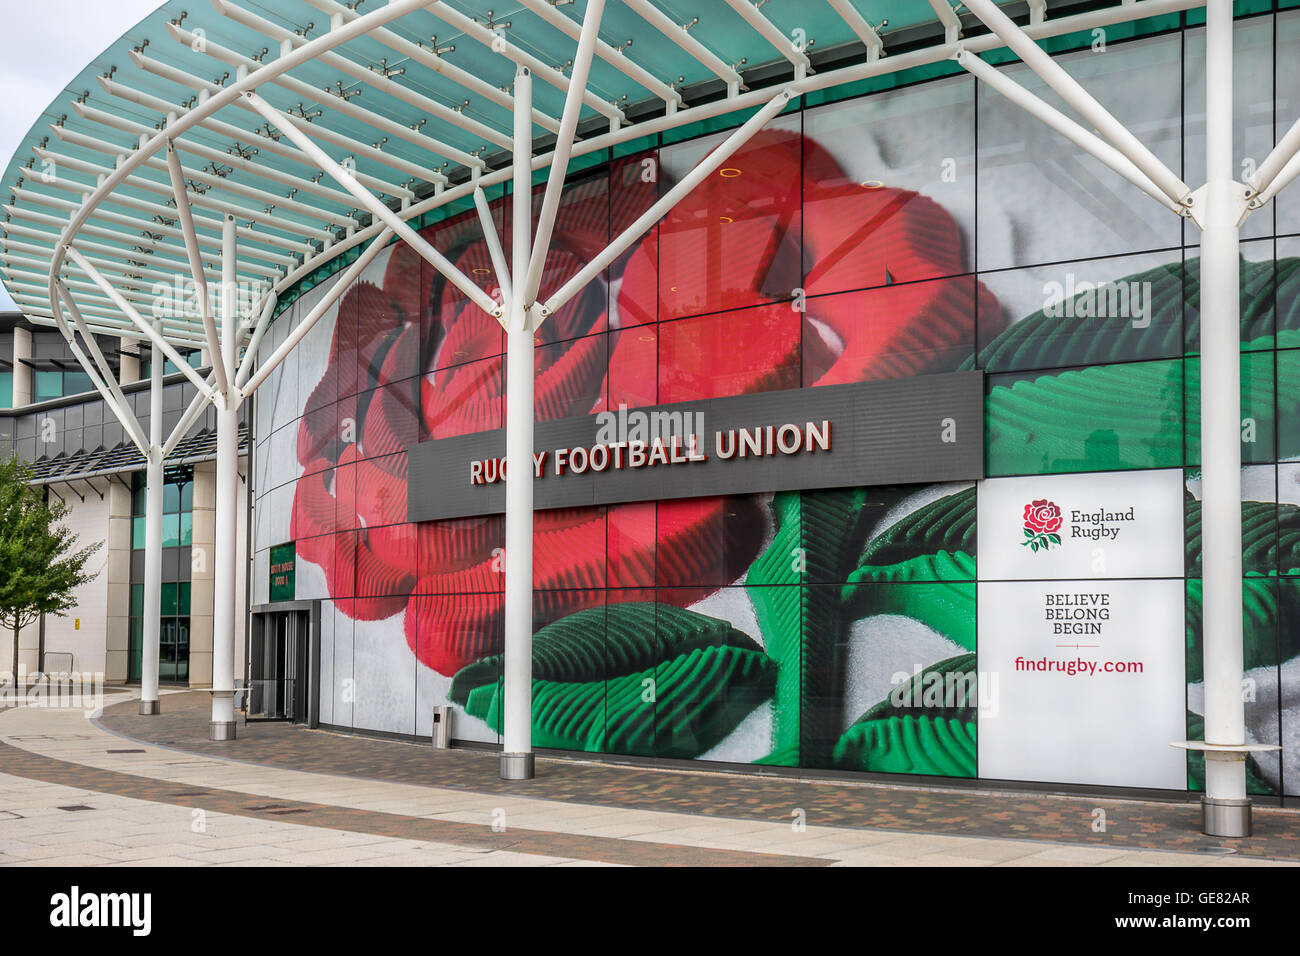 Twickenham Rugby Football Union headquarters in south west London - Stock Image